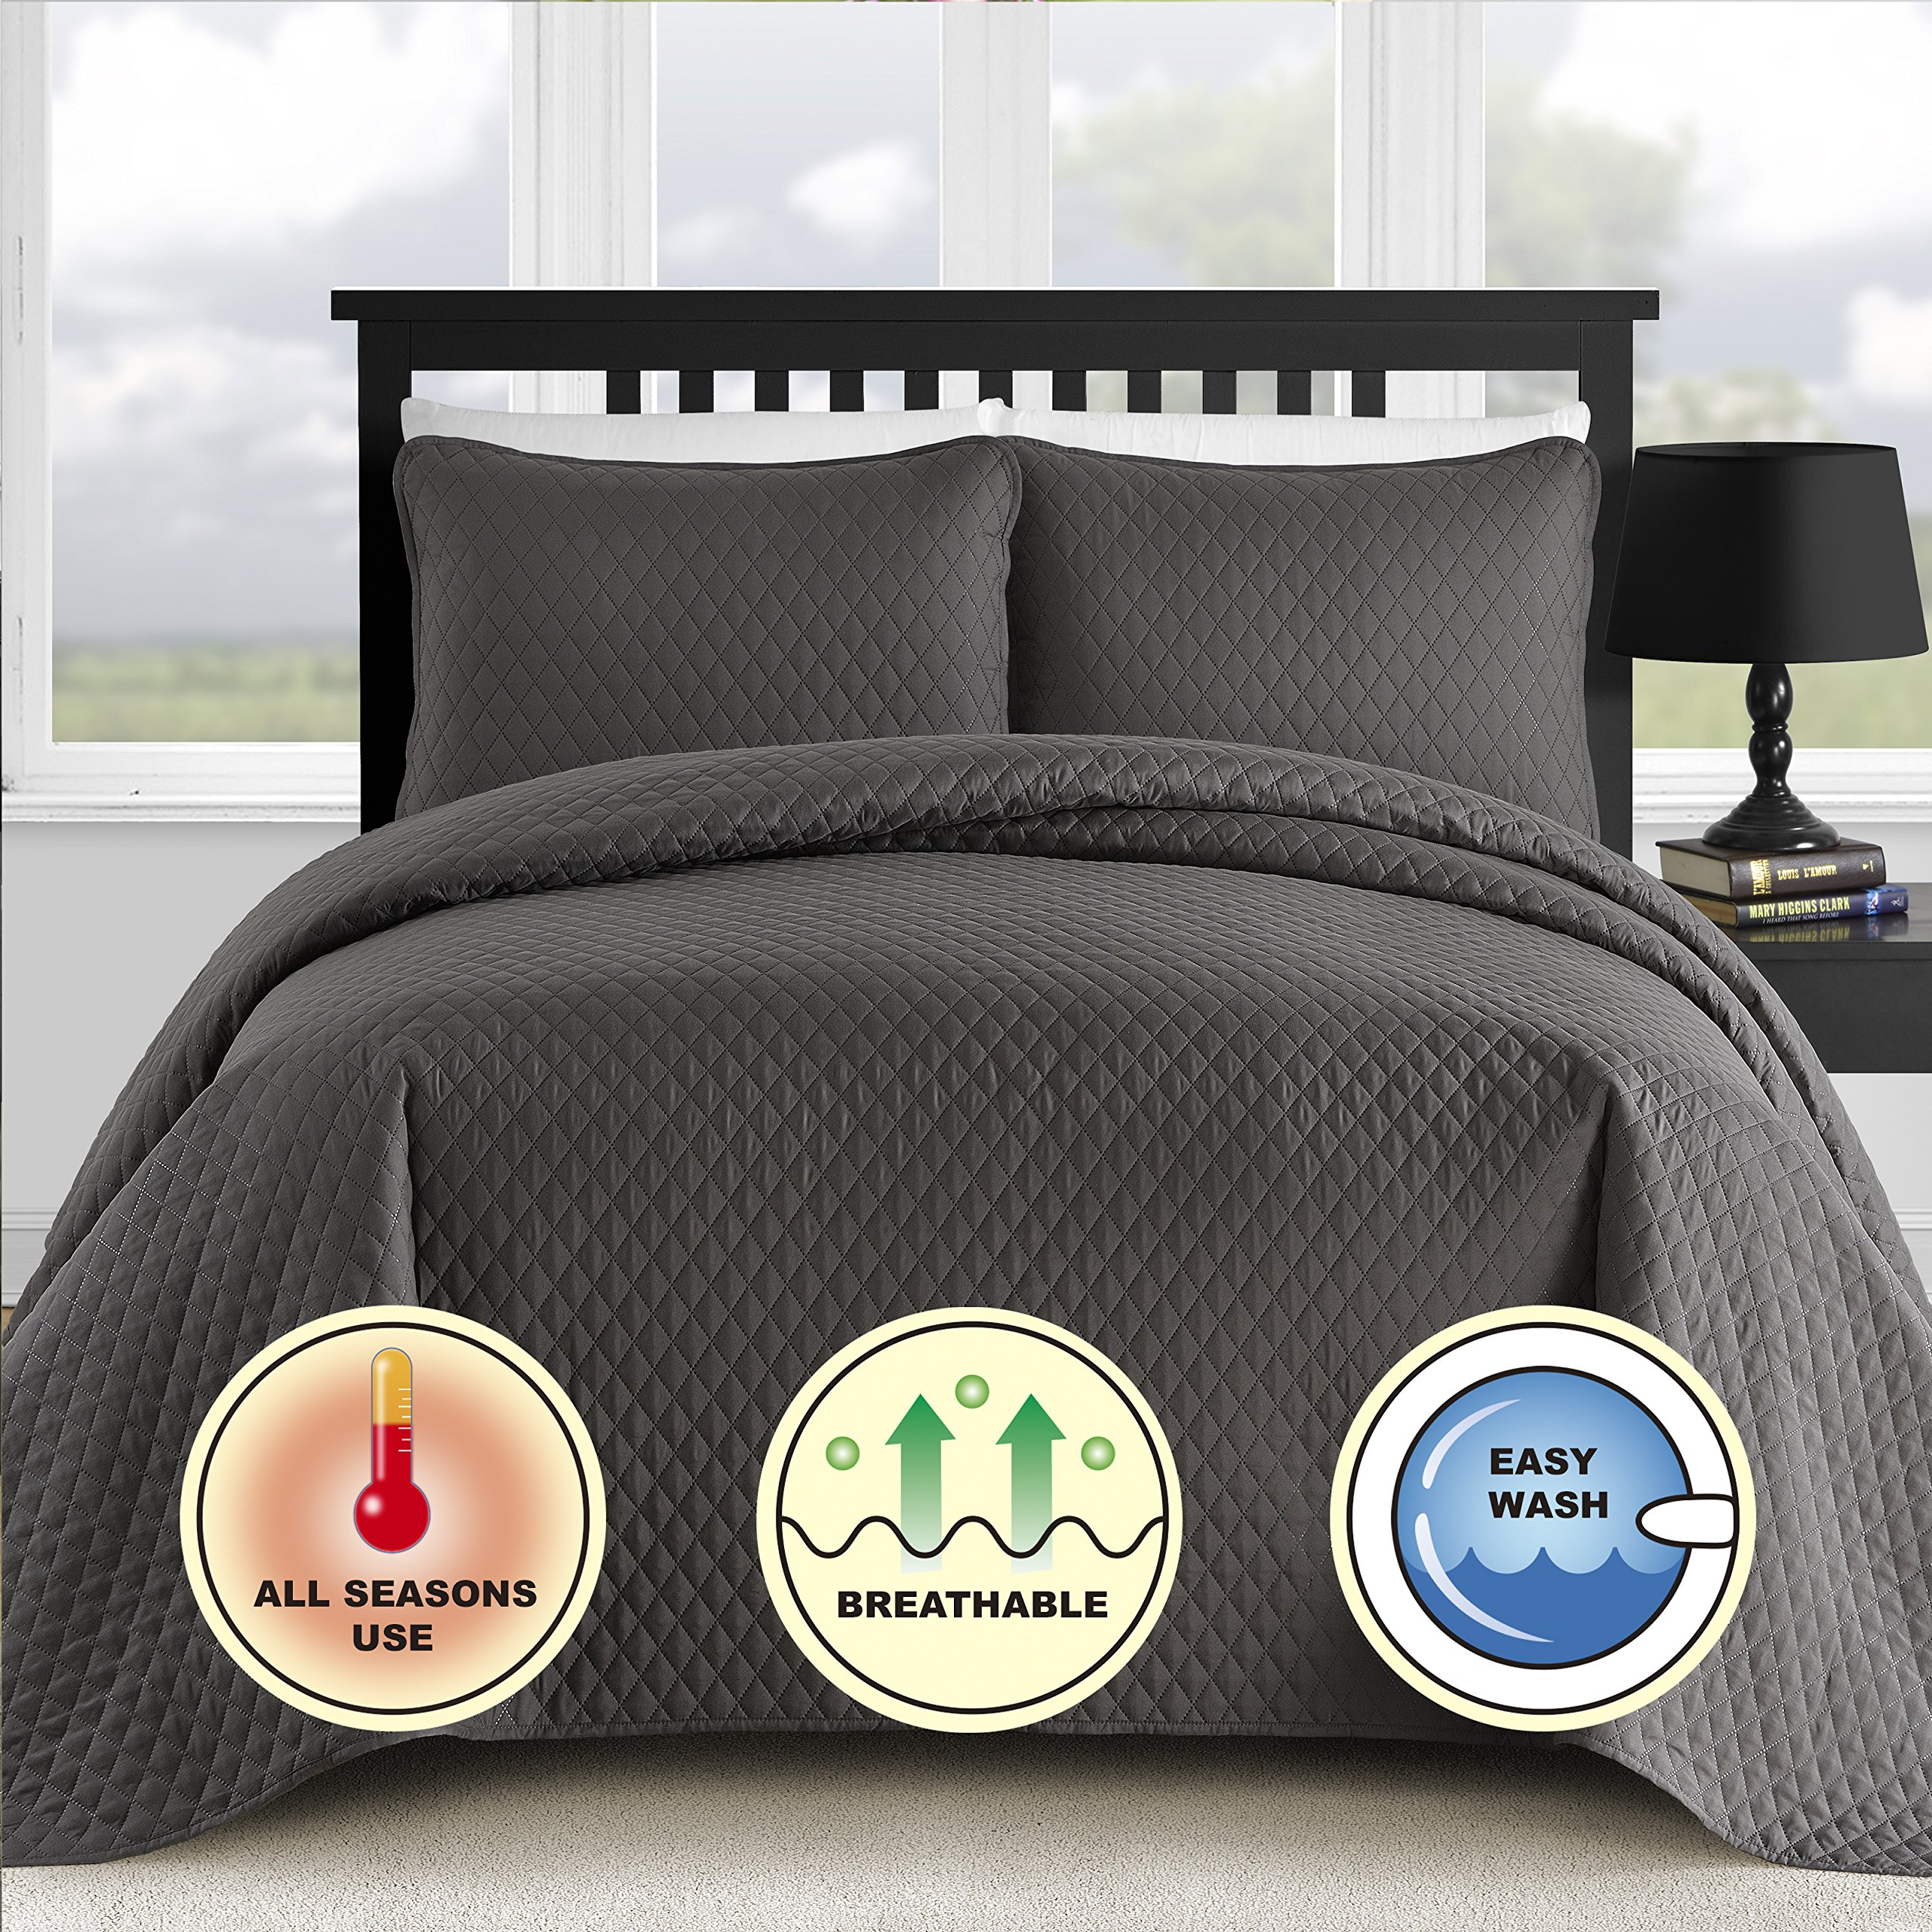 Comfy Bedding 3-Piece Bedspread Coverlet Set Extra Lightweight and Oversized Diamond Embossed, King/Cal King Charcoal by Comfy Bedding (Image #3)